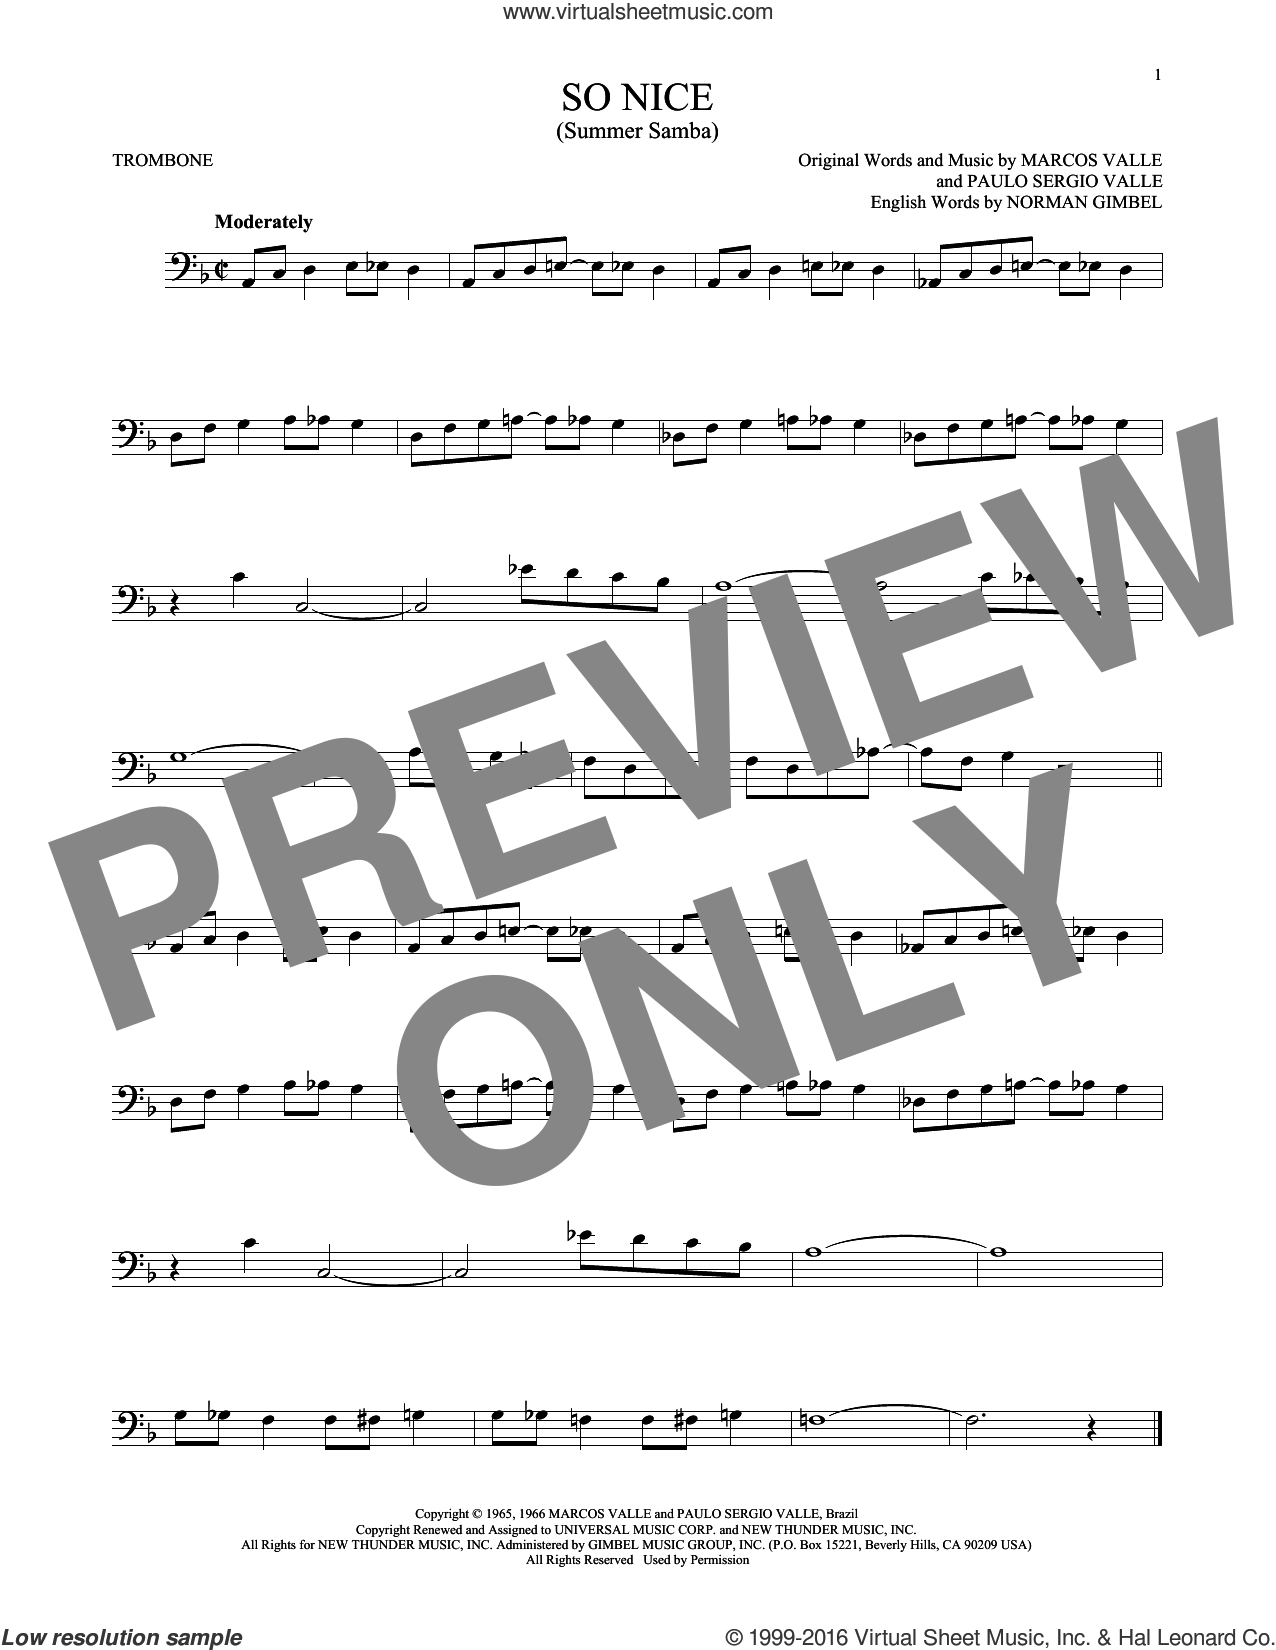 So Nice (Summer Samba) sheet music for trombone solo by Paulo Sergio Valle, Marcos Valle and Norman Gimbel. Score Image Preview.